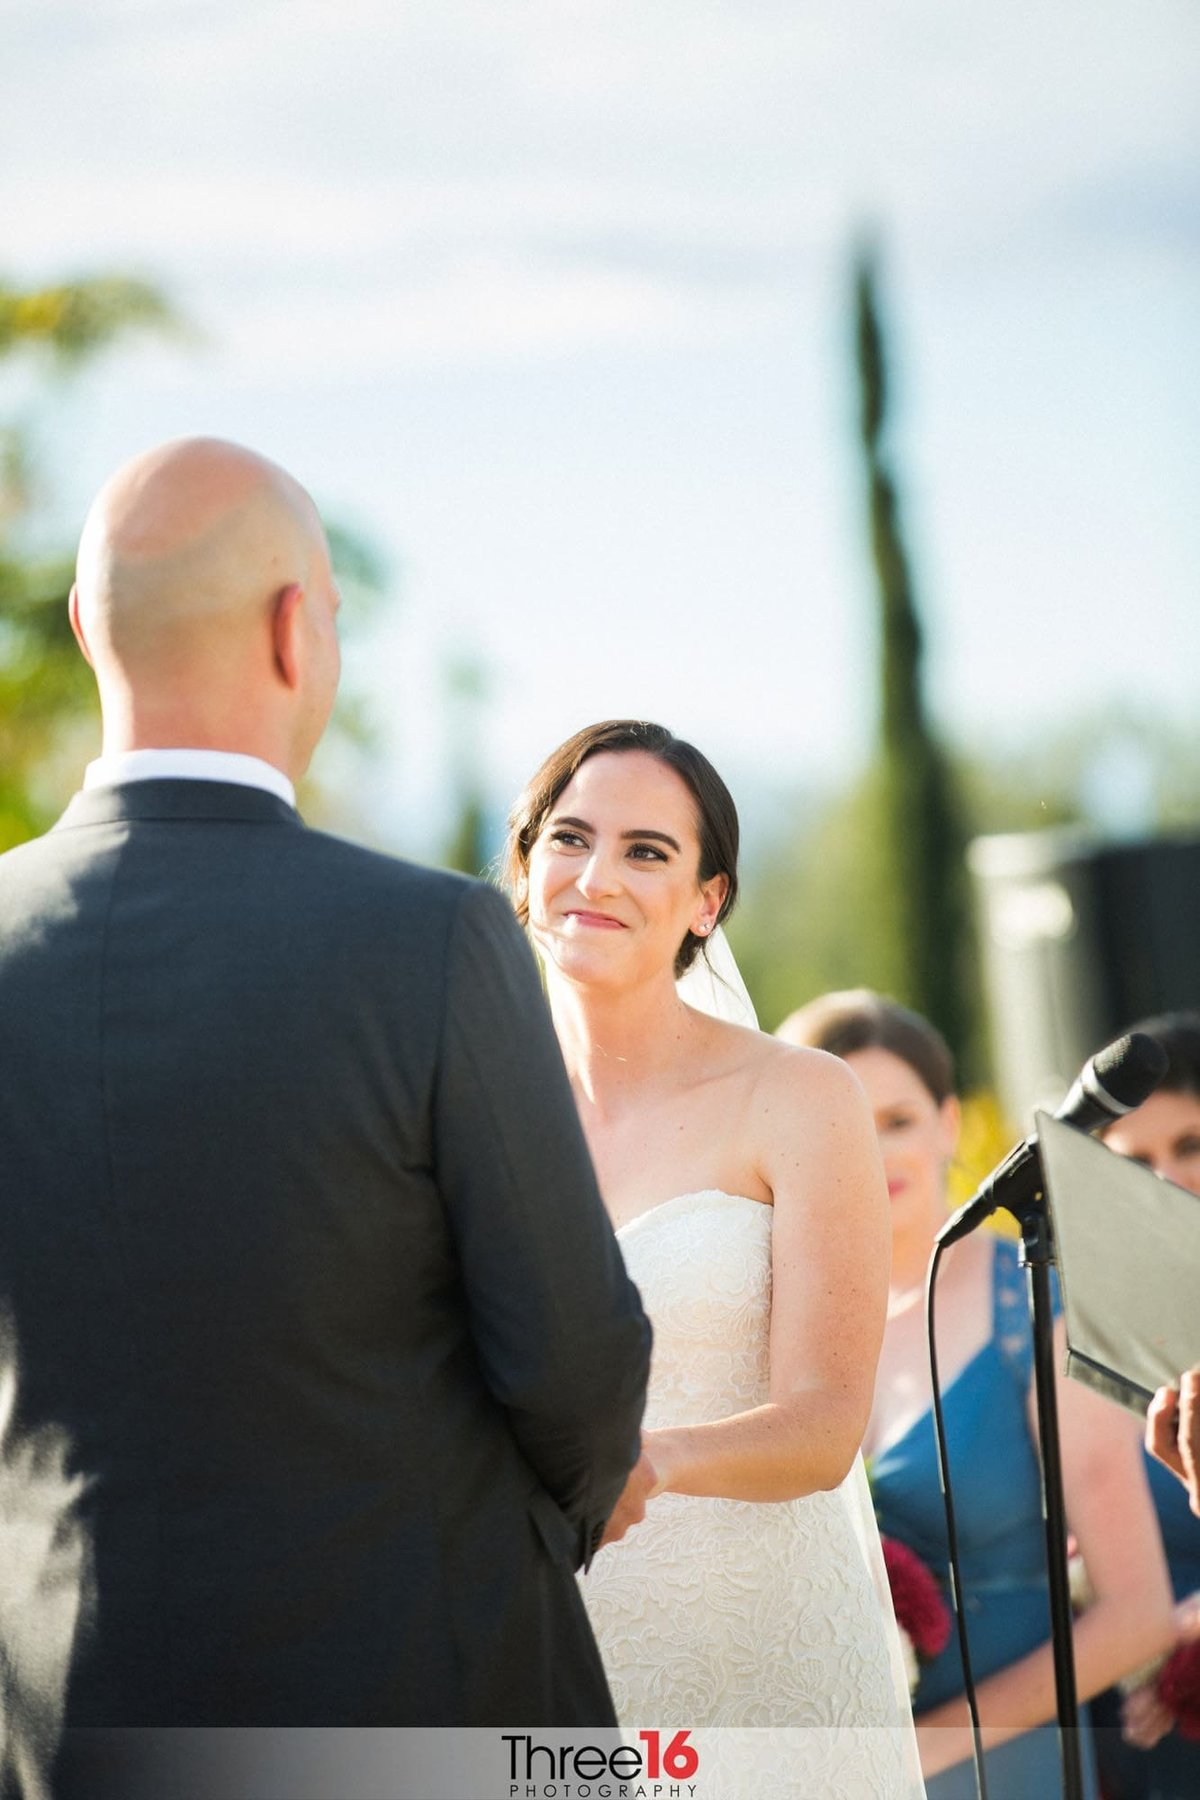 Bride gives her Groom a special glance